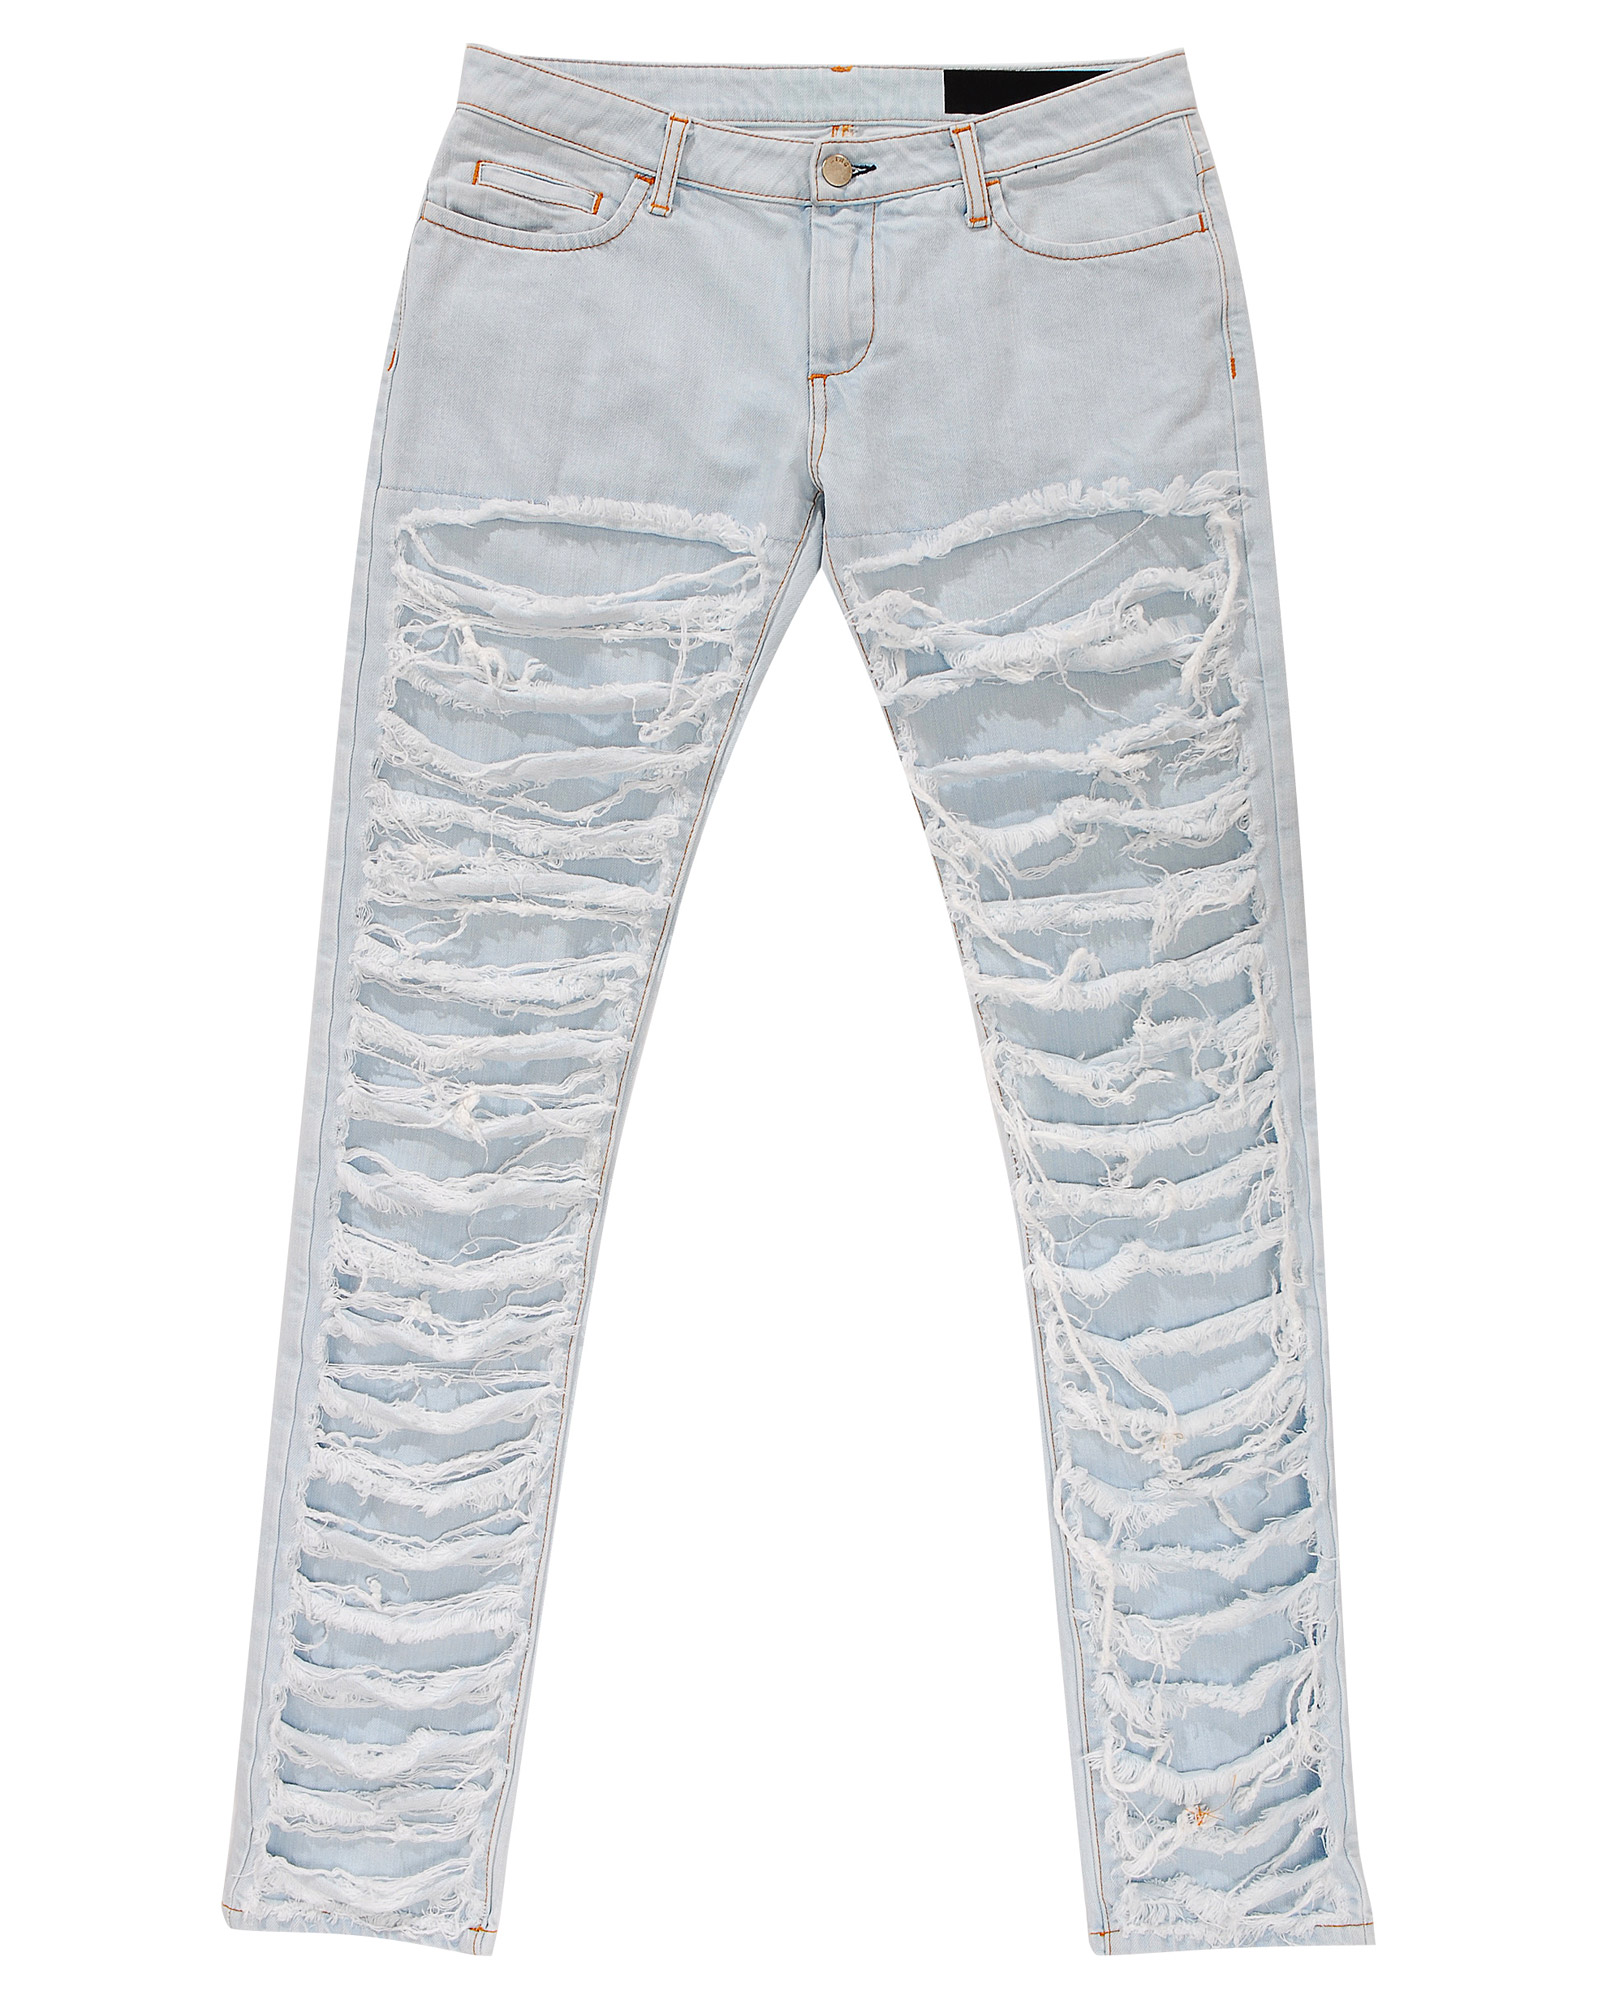 Silver Ripped Jeans - Xtellar Jeans